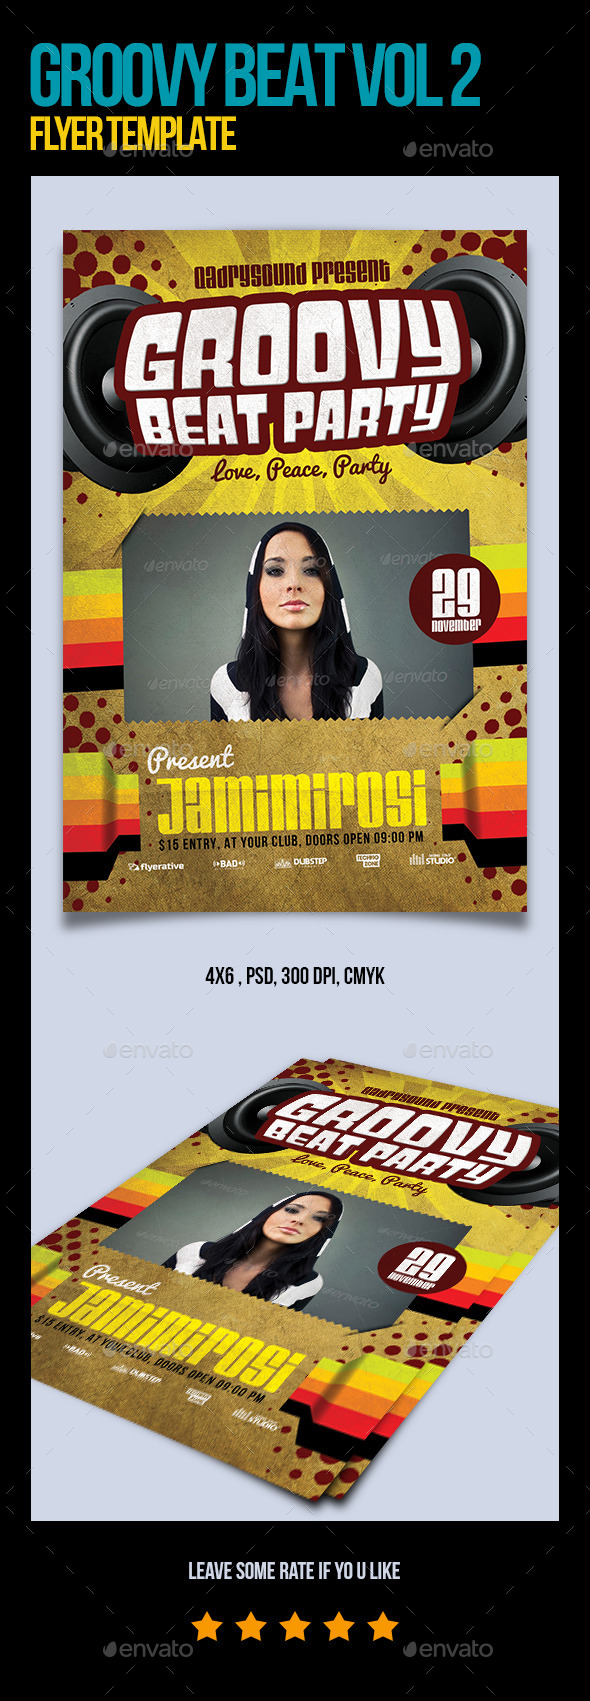 Groovy Beat Vol 2 Flyer Template